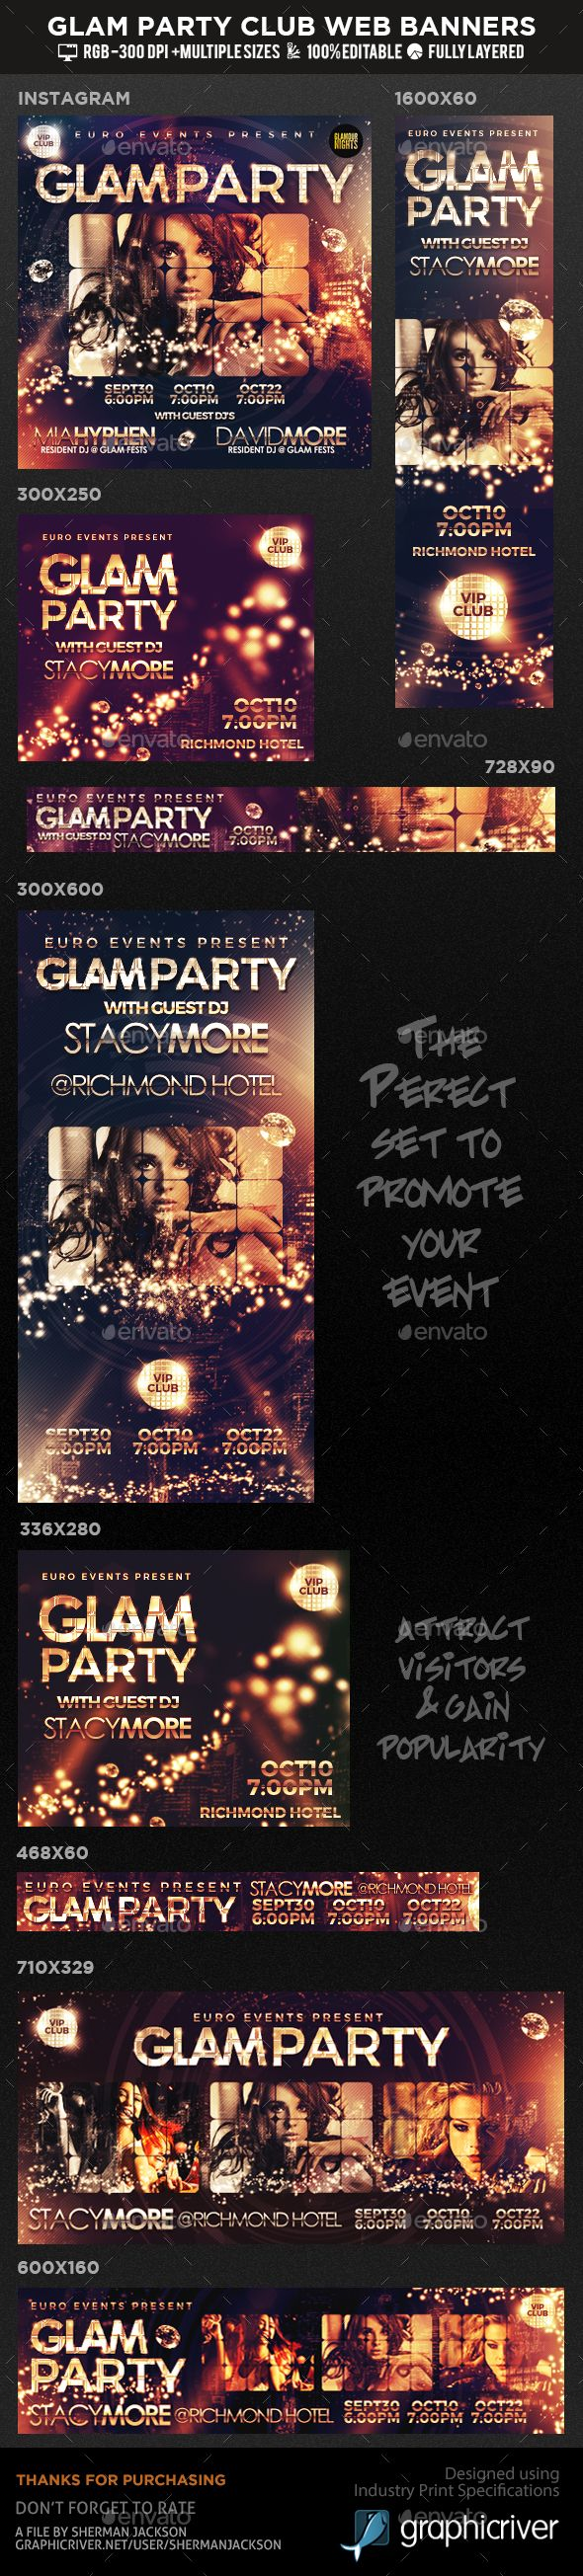 Glam Party & Club Event Social Web Banners Template PSD